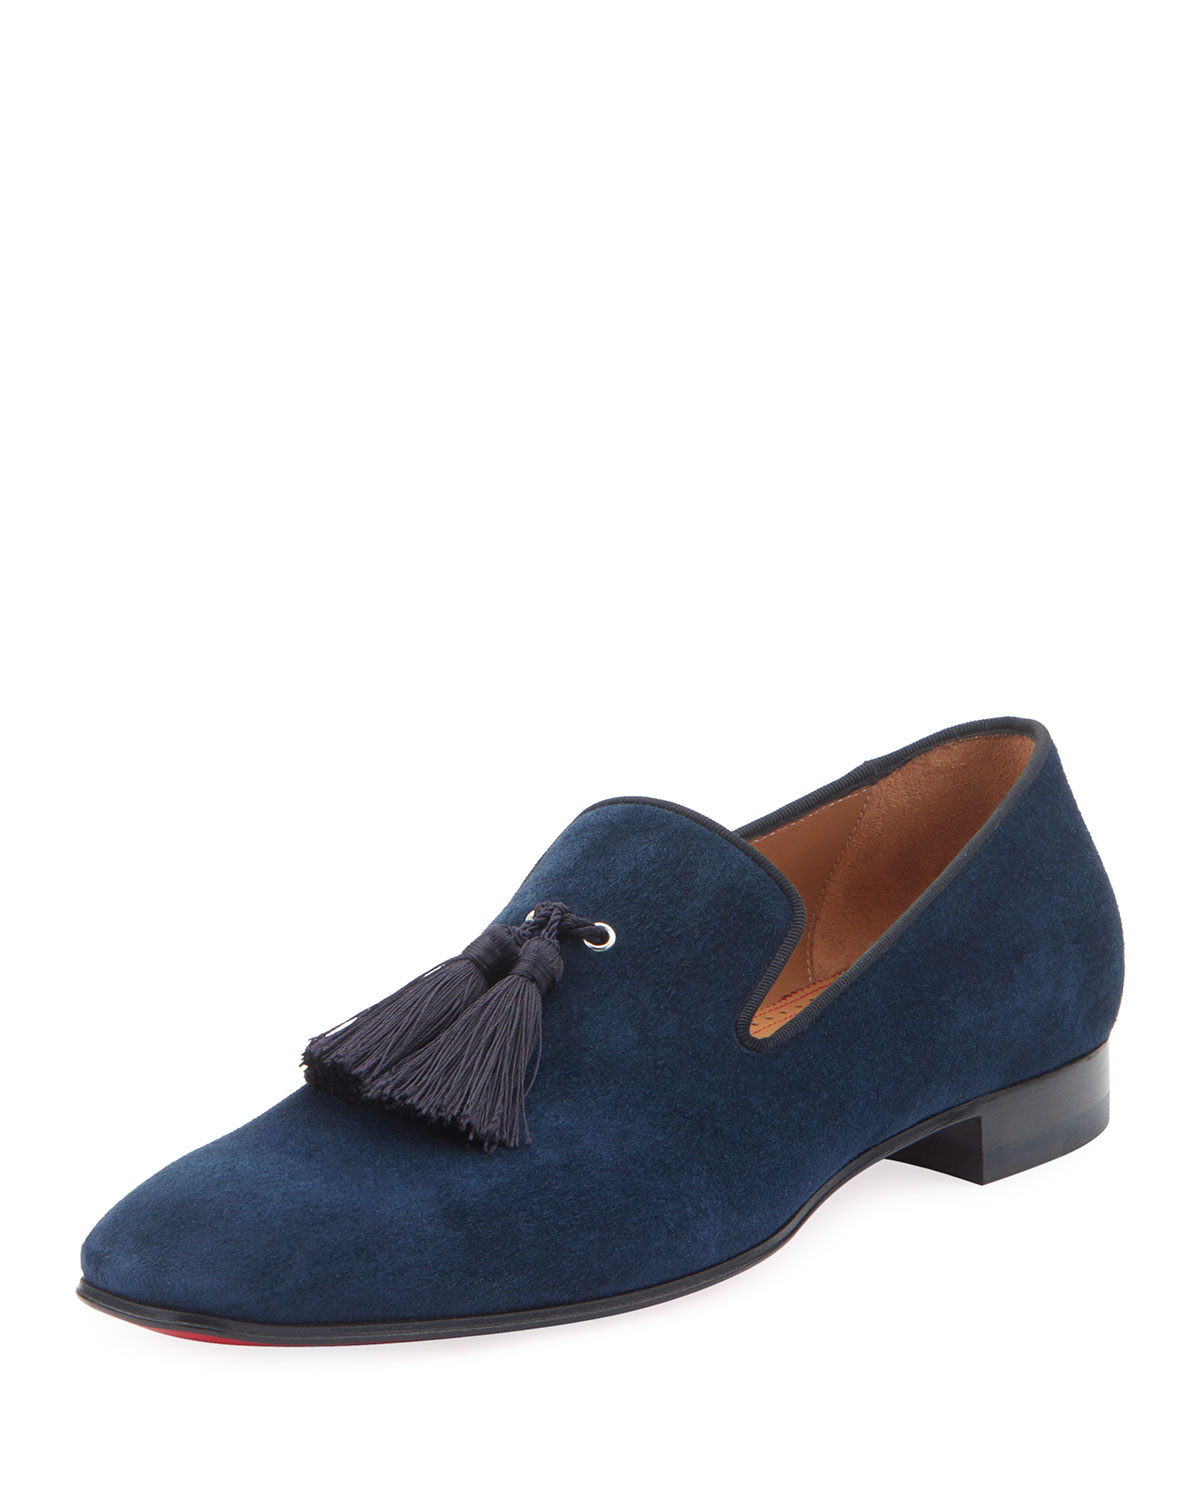 wholesale dealer c2c6f 75fe9 Men's Velour Suede Tassel Loafers in Blue